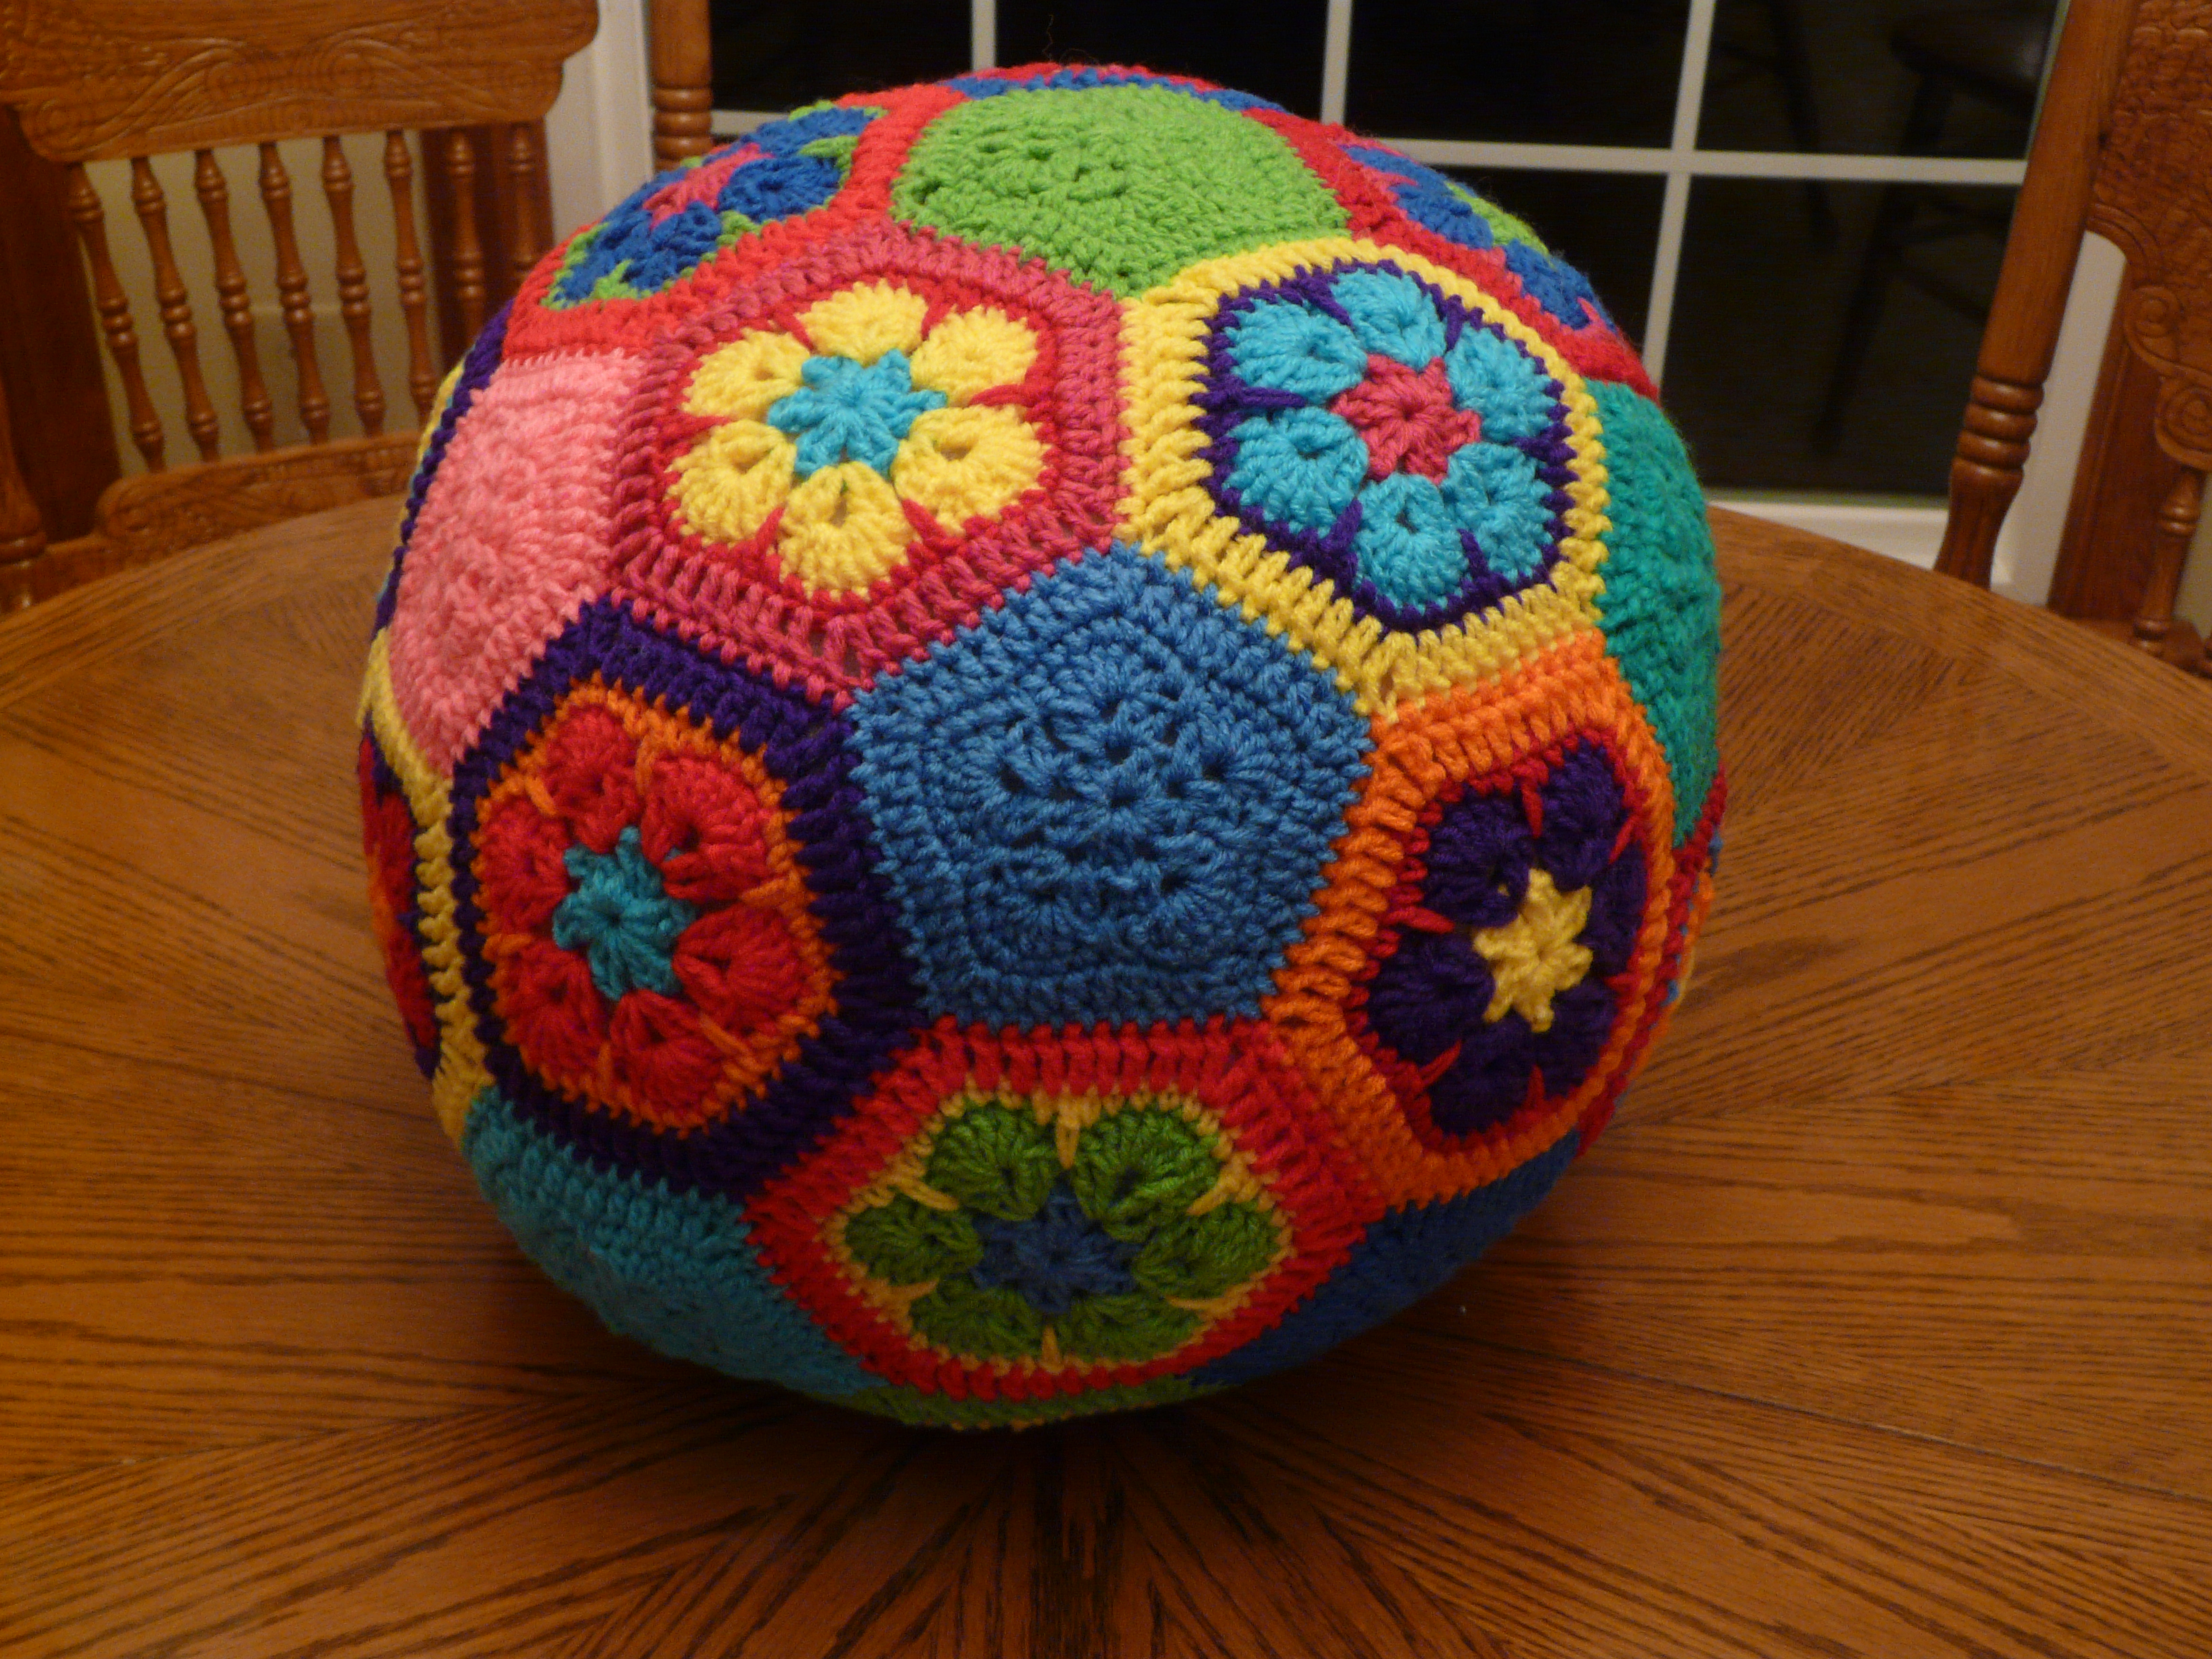 Crochet Redux Piecing Together The Soccer Ball